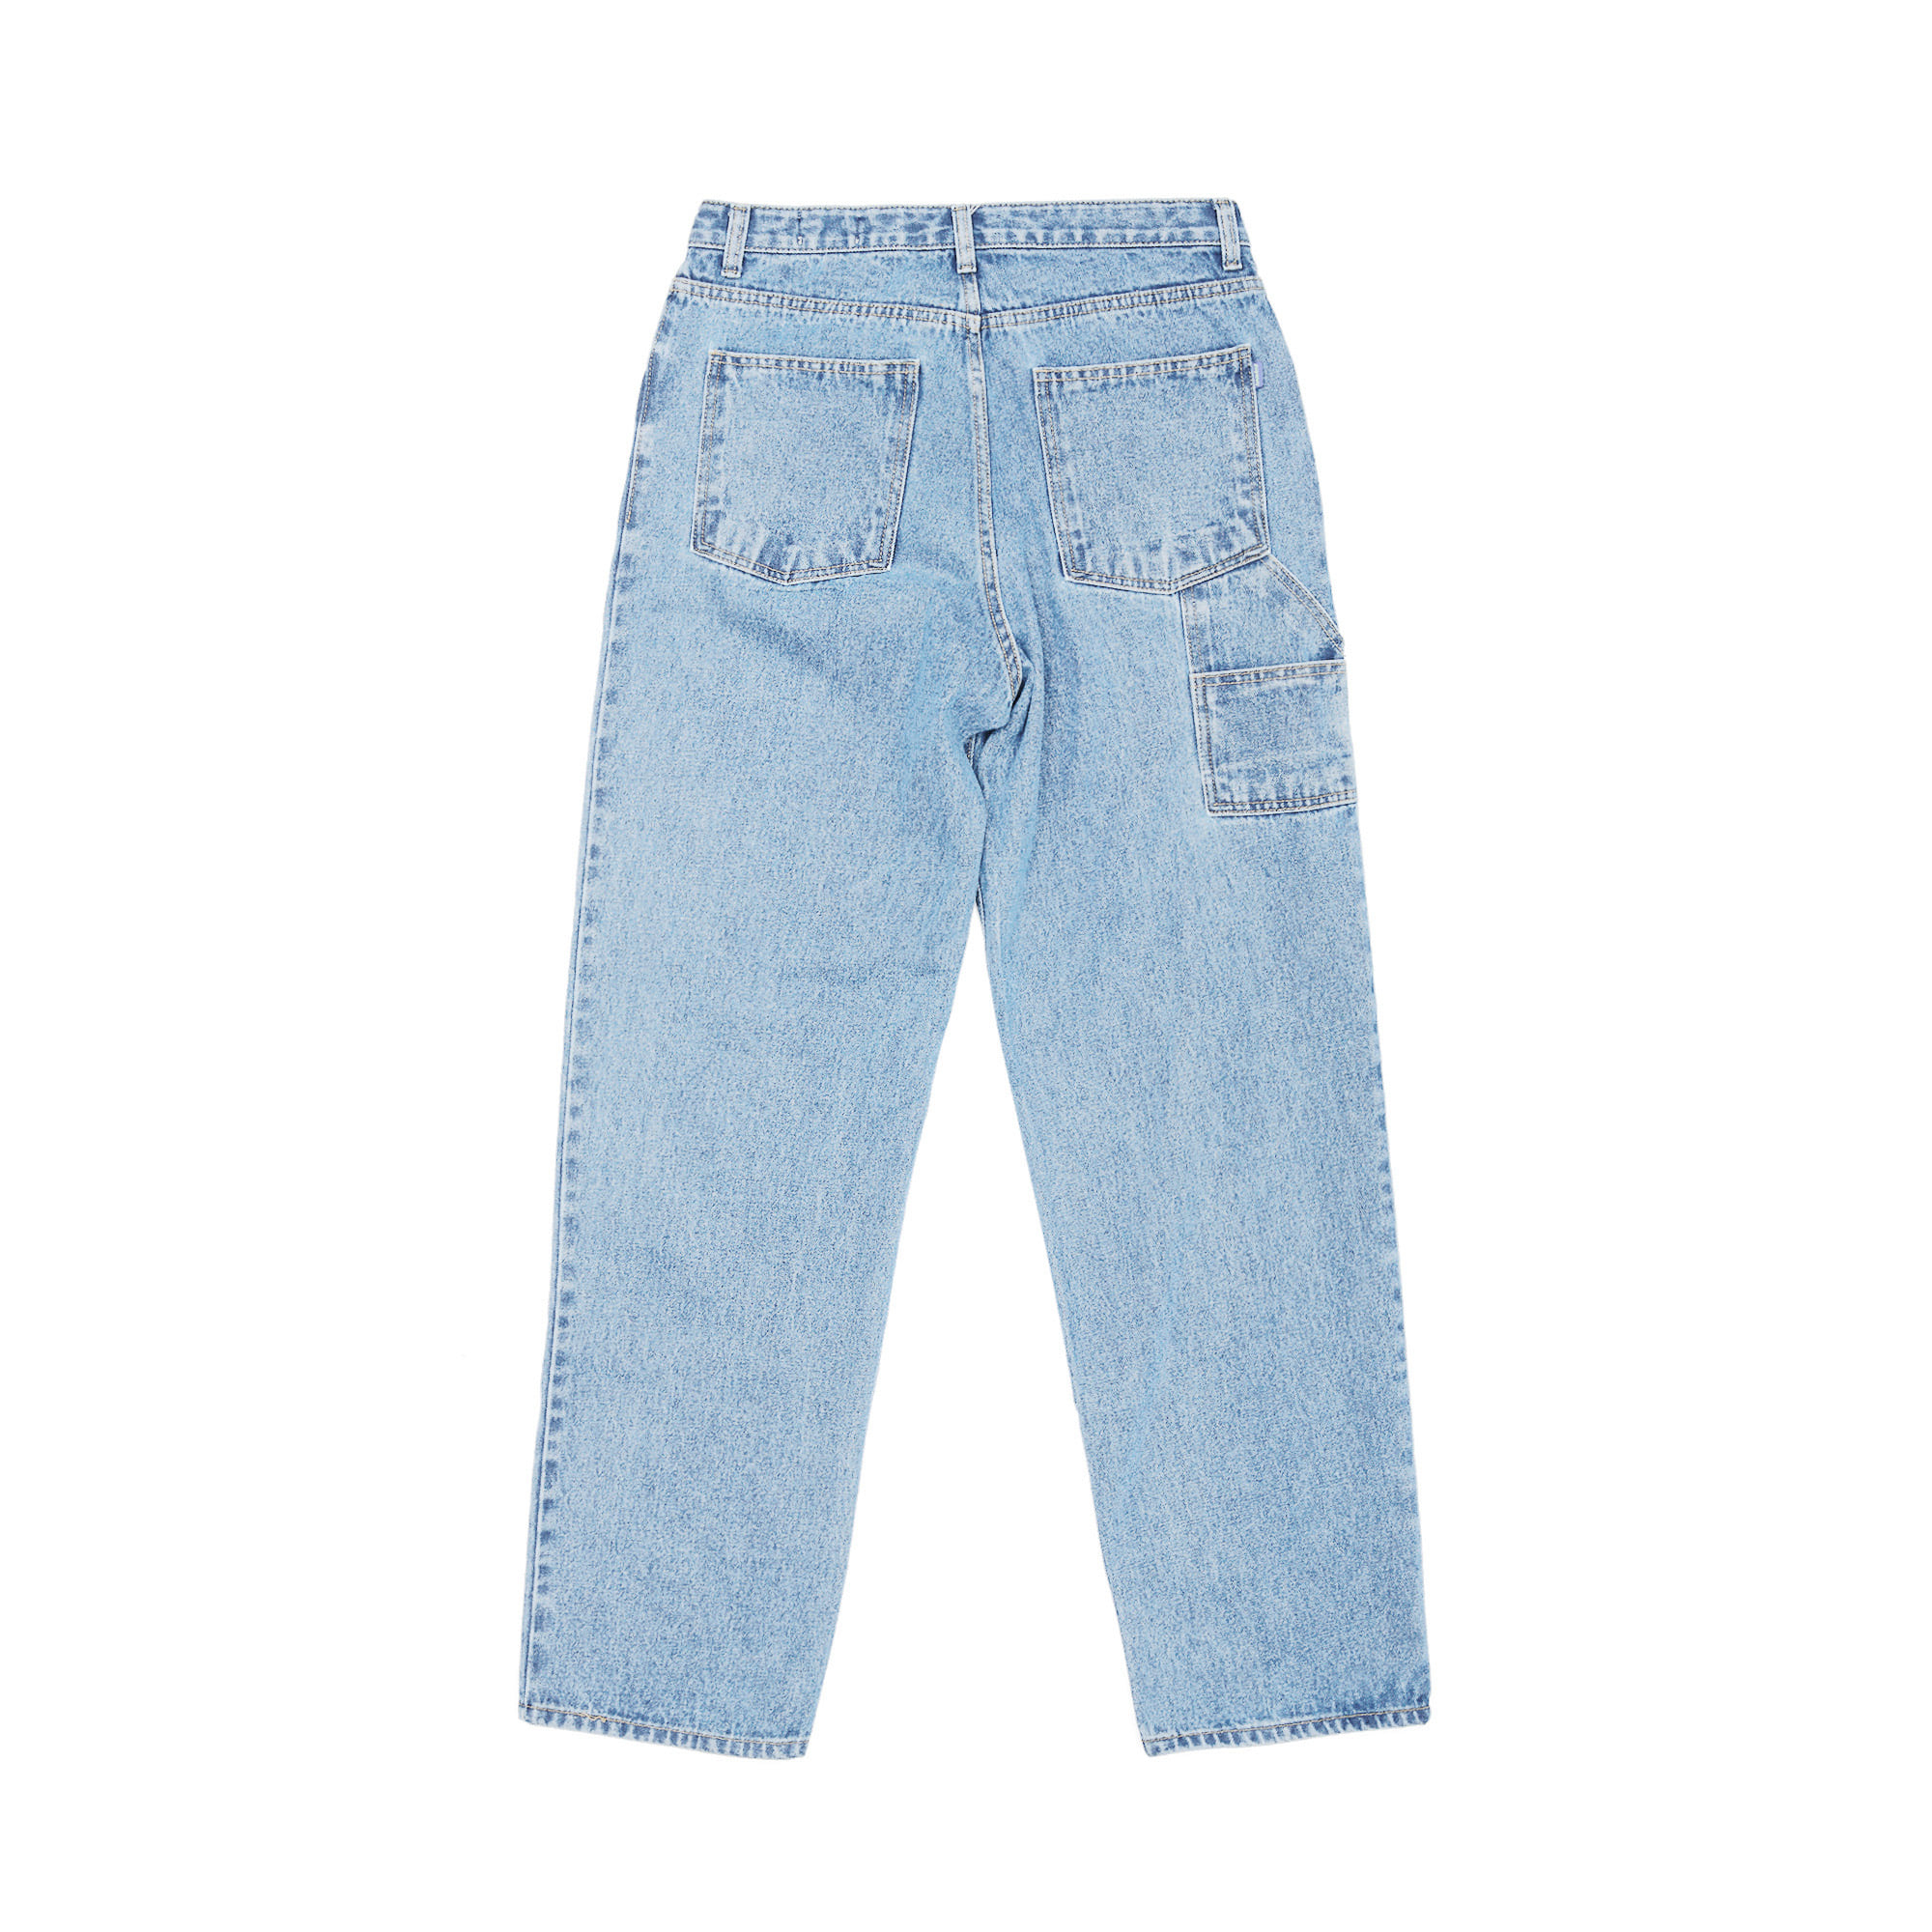 자체브랜드 CARPENTER DENIM PANTS / LIGHTBLUE